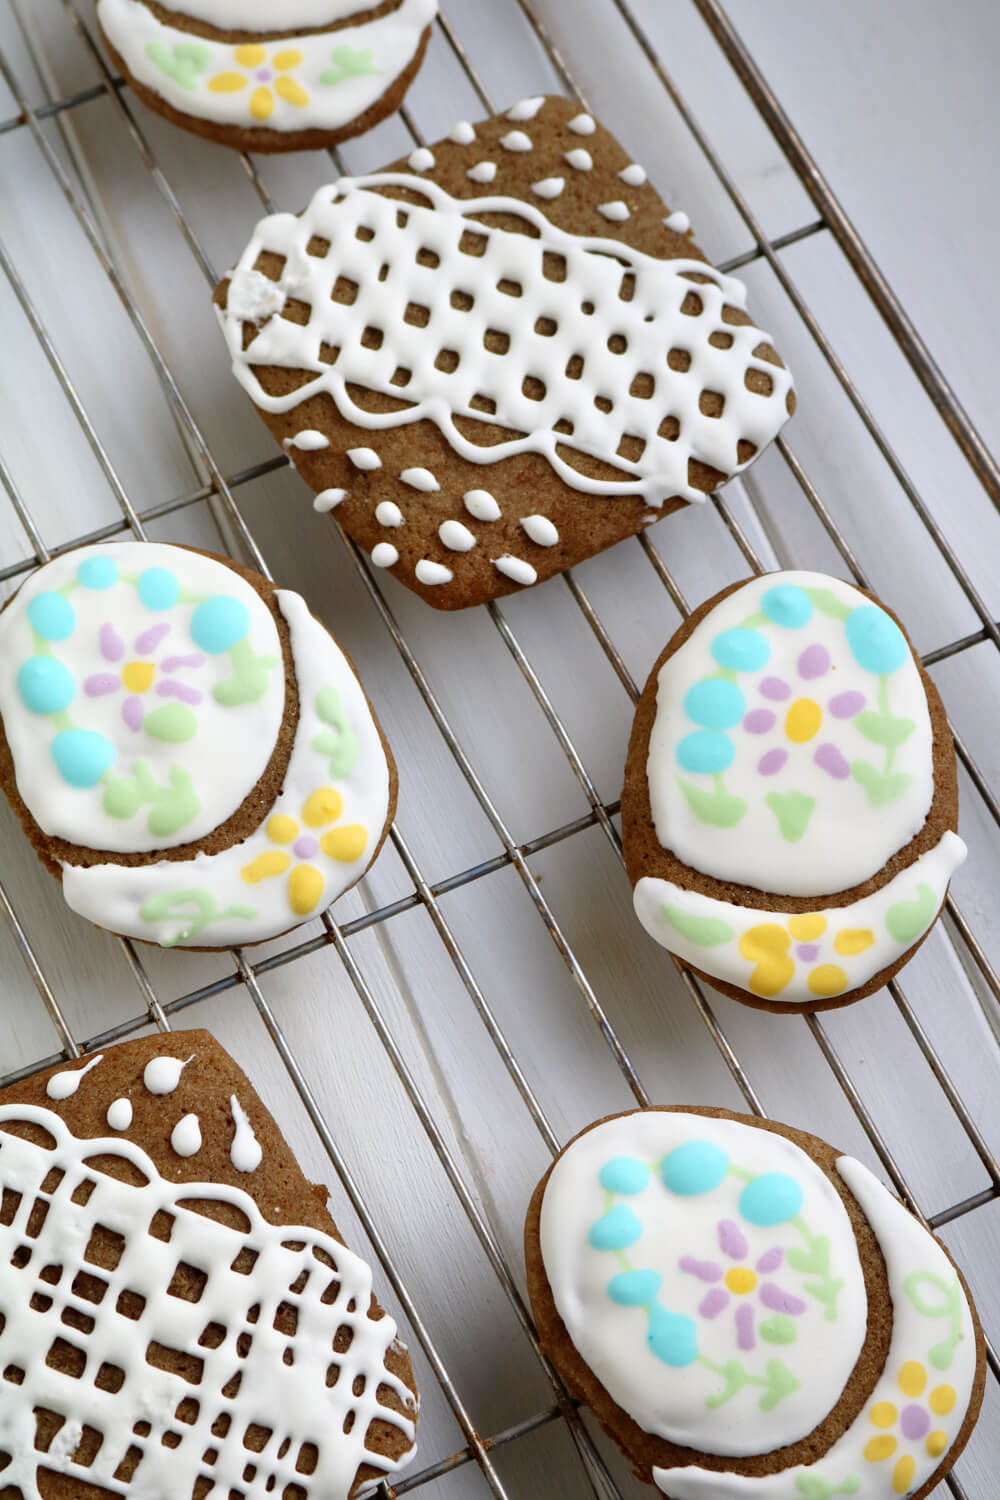 Iced Ginger Biscuits | Bake Off Bake Along | Hungry Little Bear